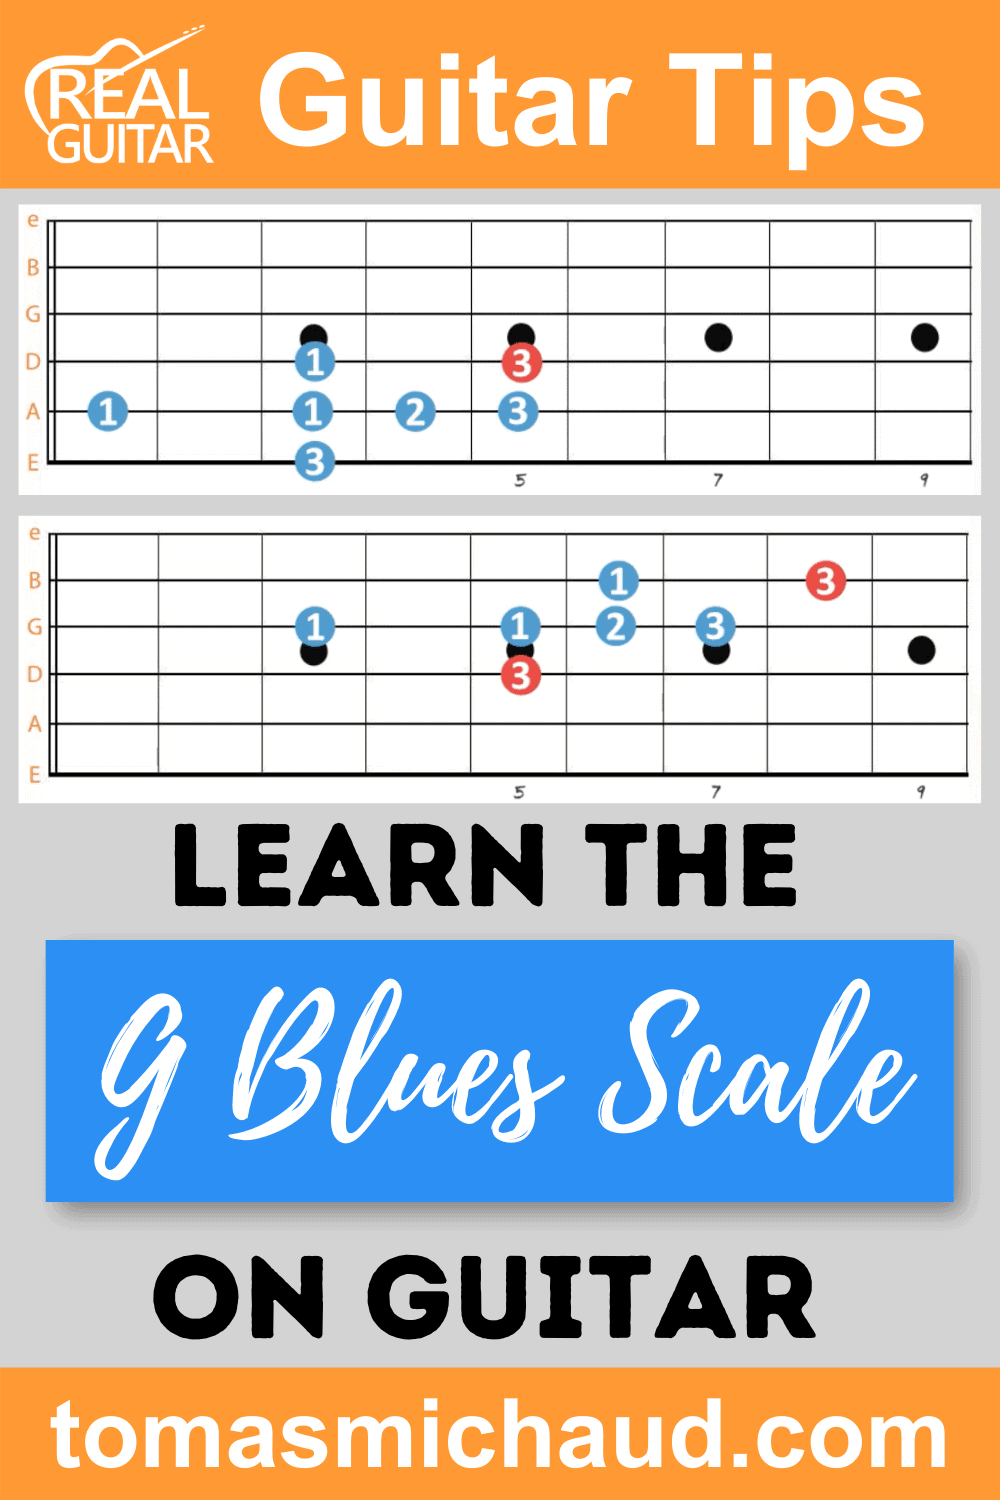 Learn the G Blues Scale on Guitar